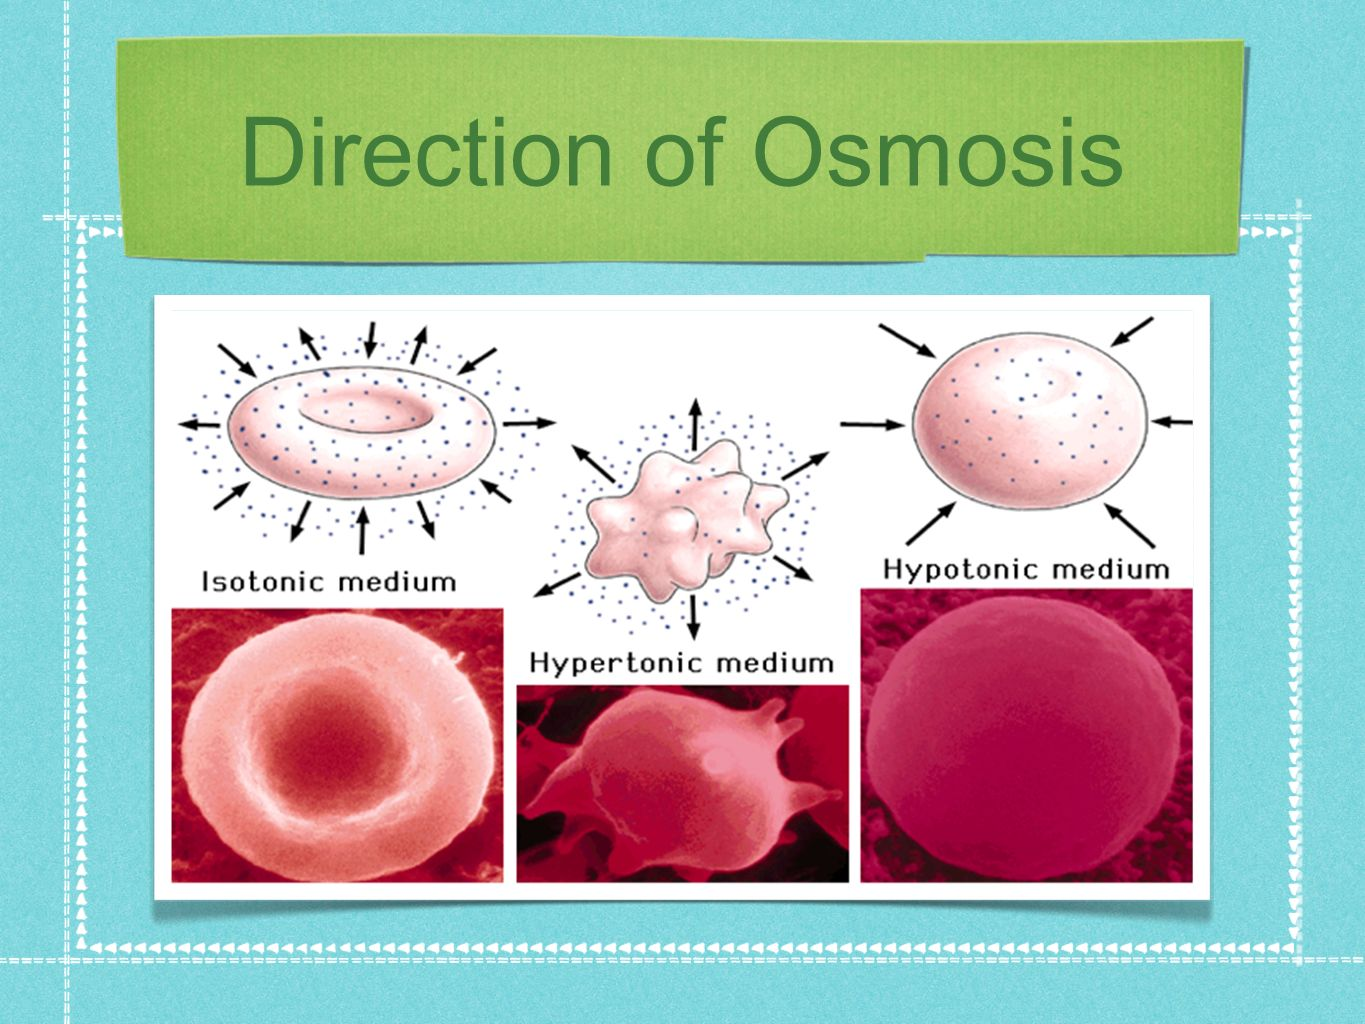 Direction of Osmosis